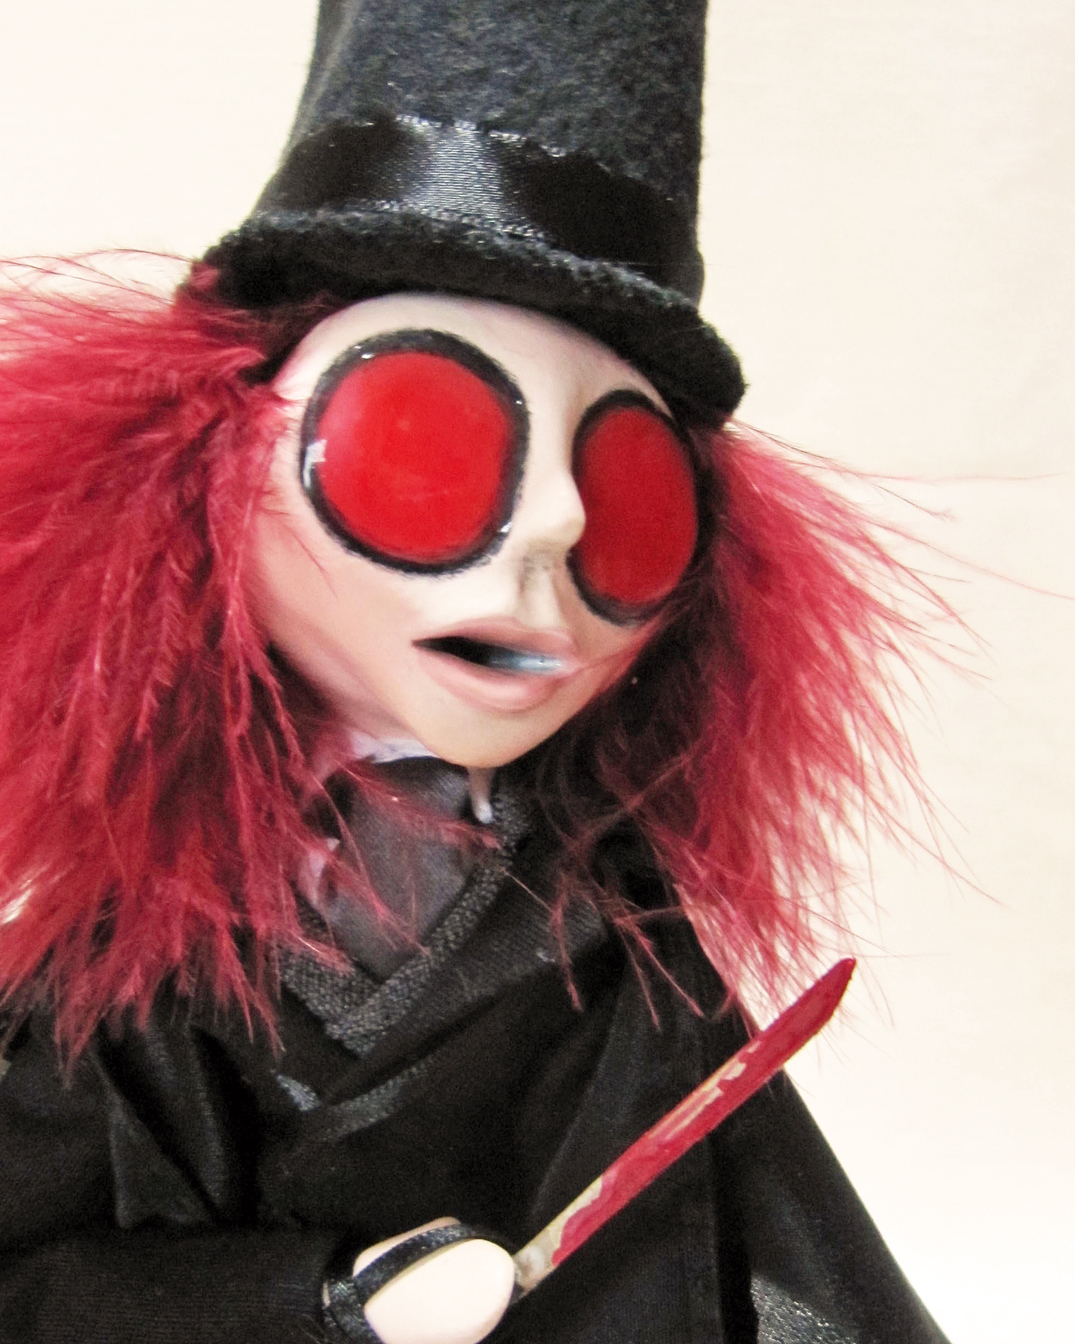 Jack the Ripper doll